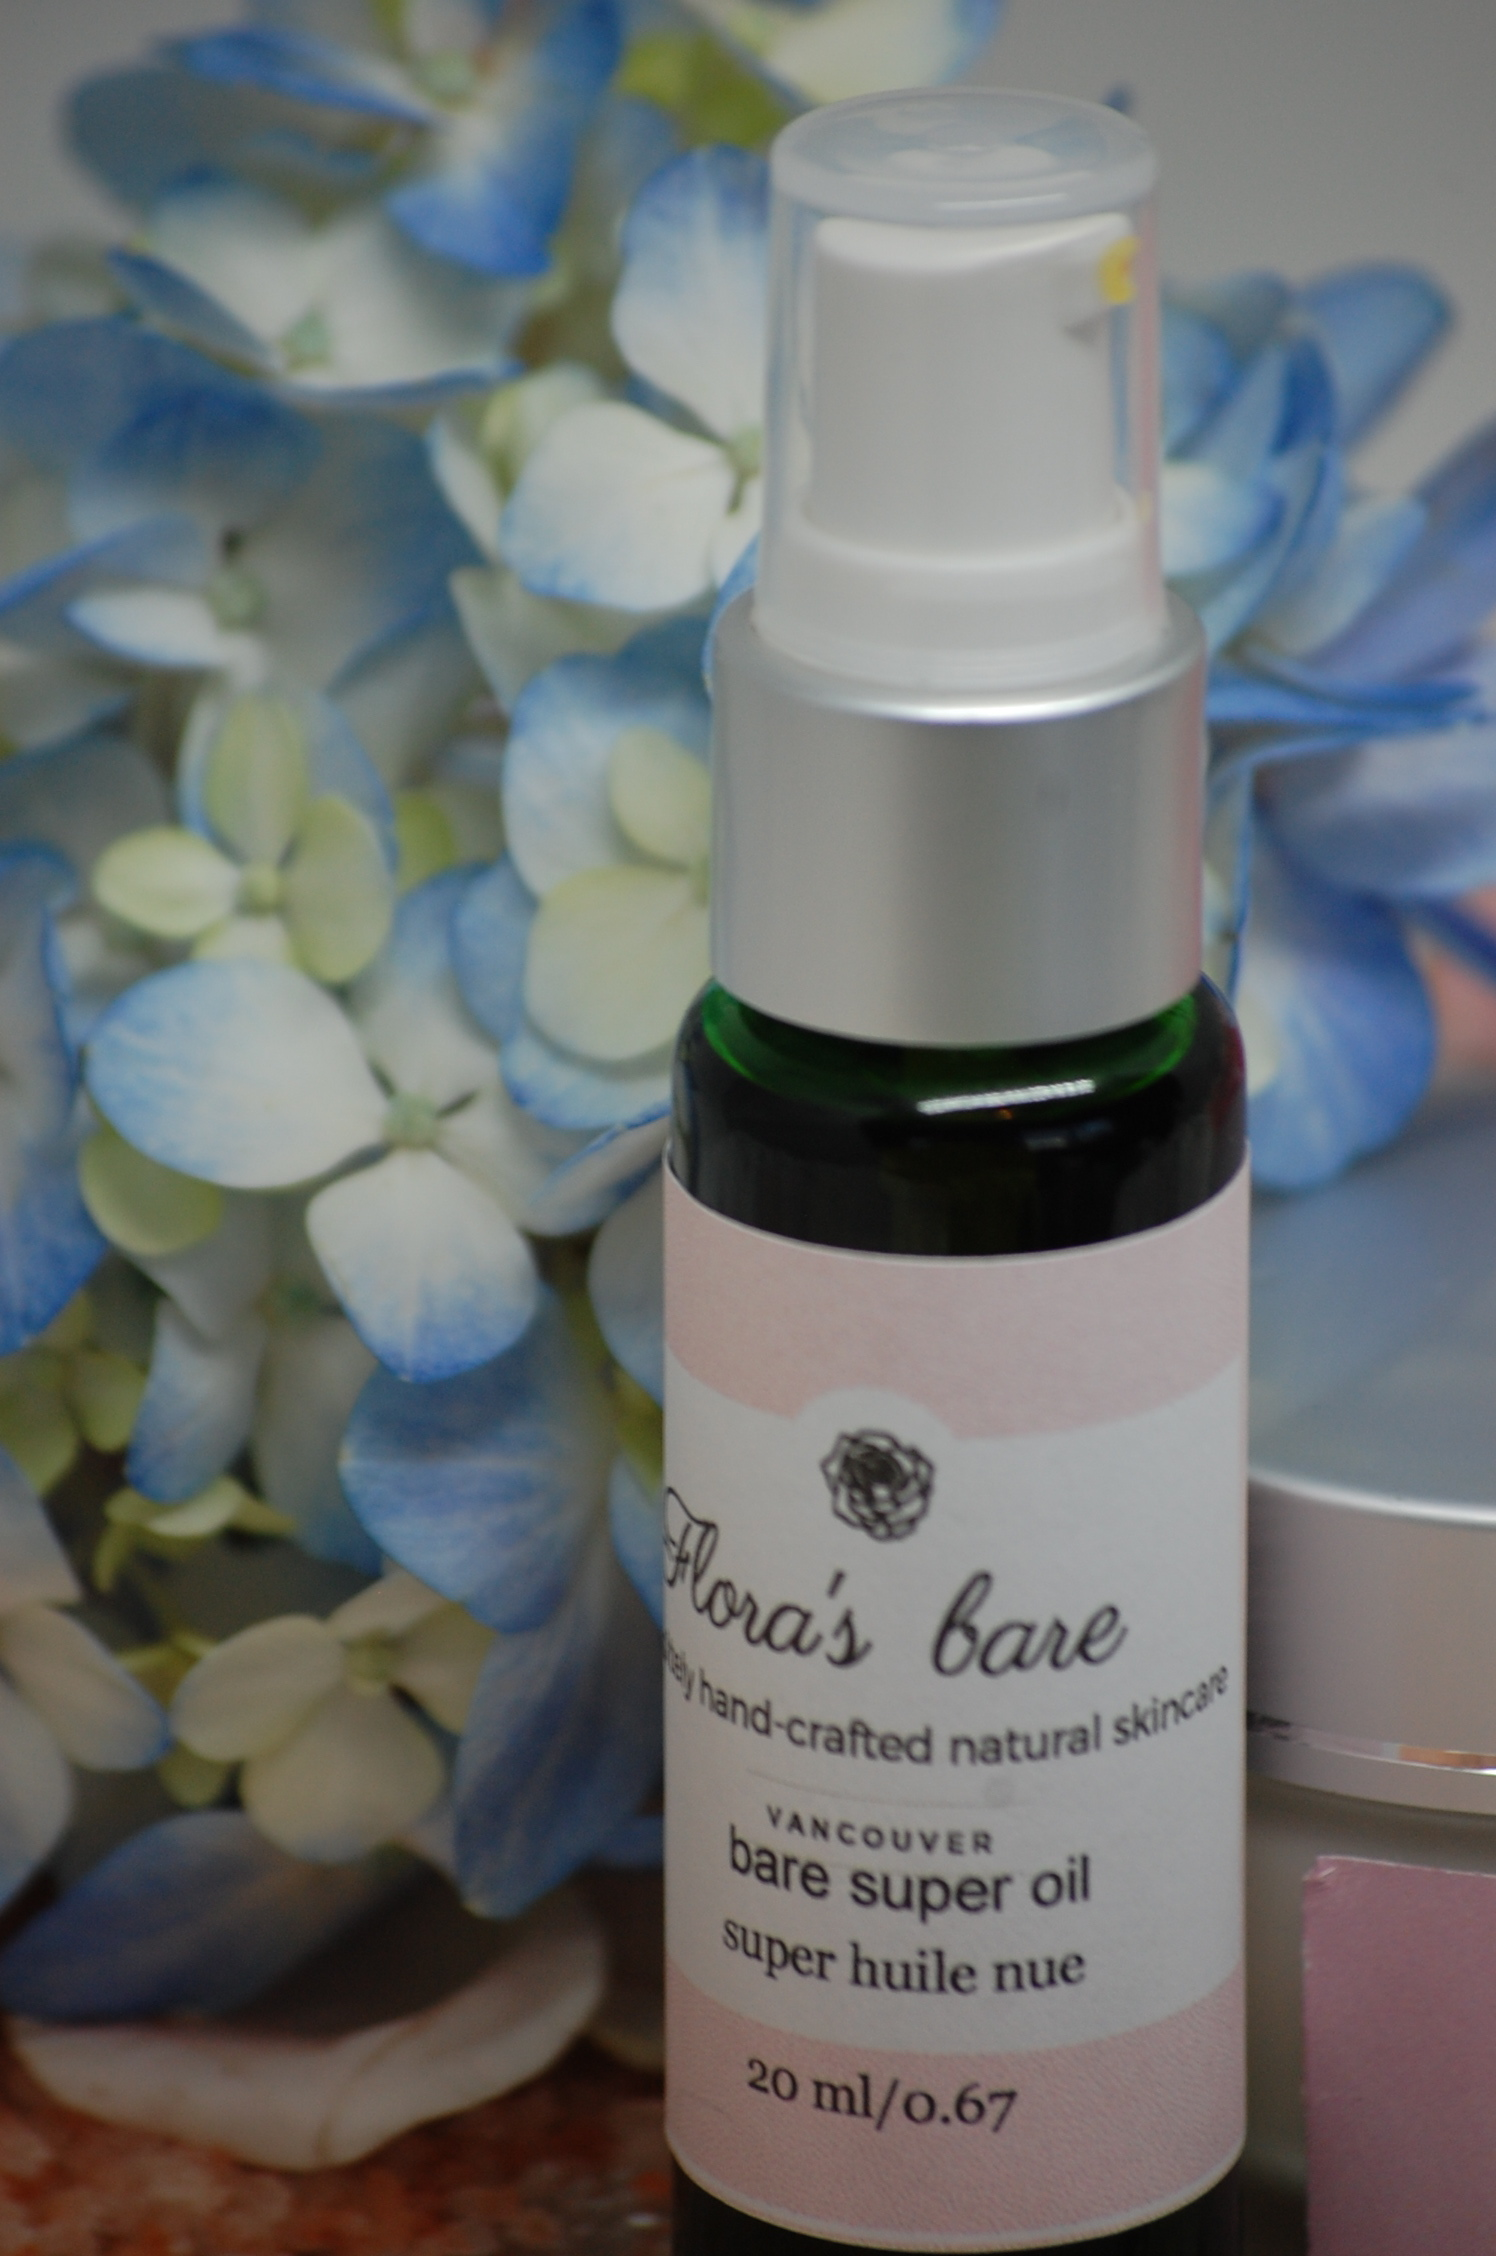 Bare Super Serum - it's called SUPER for a reason, it's packed with potent oils for SUPER result! Here's a few: - Rose hip Seed Oil - our serum is comprised of 45% of this amazing oil, derived from the seeds of rose bushes through cold press extraction. It is known to have significant anti-aging benefits as it is packed with vitamins E,C,F and pro-vitamin A which contribute to its antioxidant effect.Camellia Oil - rich in oleic acid and an assortment of vitamins, namely; vitamins A,B,C,D and E. Studies conducted on this oil have shown to increase pro-collagen, required in the process of collagen synthesis.Carrot Seed Essential Oil - this oil contains an interesting component called carotol. It is believed that this oil, which makes up 40% of the essential oil, aids in rejuvenating the skin, as well as firming and toning.Pomegranate Oil - contains a high concentration of antioxidant compound ellagic acid, which prevents and minimizes damage caused by ultraviolet radiation and other pollutants. Another component, punicic acid provides hydration to the skin and aids in stimulating collagen and elastin.Chia Seed Oil - this powerful seed oil is loaded with unusually high levels of phytonutrients and antioxidants more so than blueberry seed oil. Not to mention Alpha Lipoic acid; a powerful antioxidant that helps to minimize fine lines, wrinkles and enlarged pores.There's more, yep, go to serums and eye creams page to see complete list.